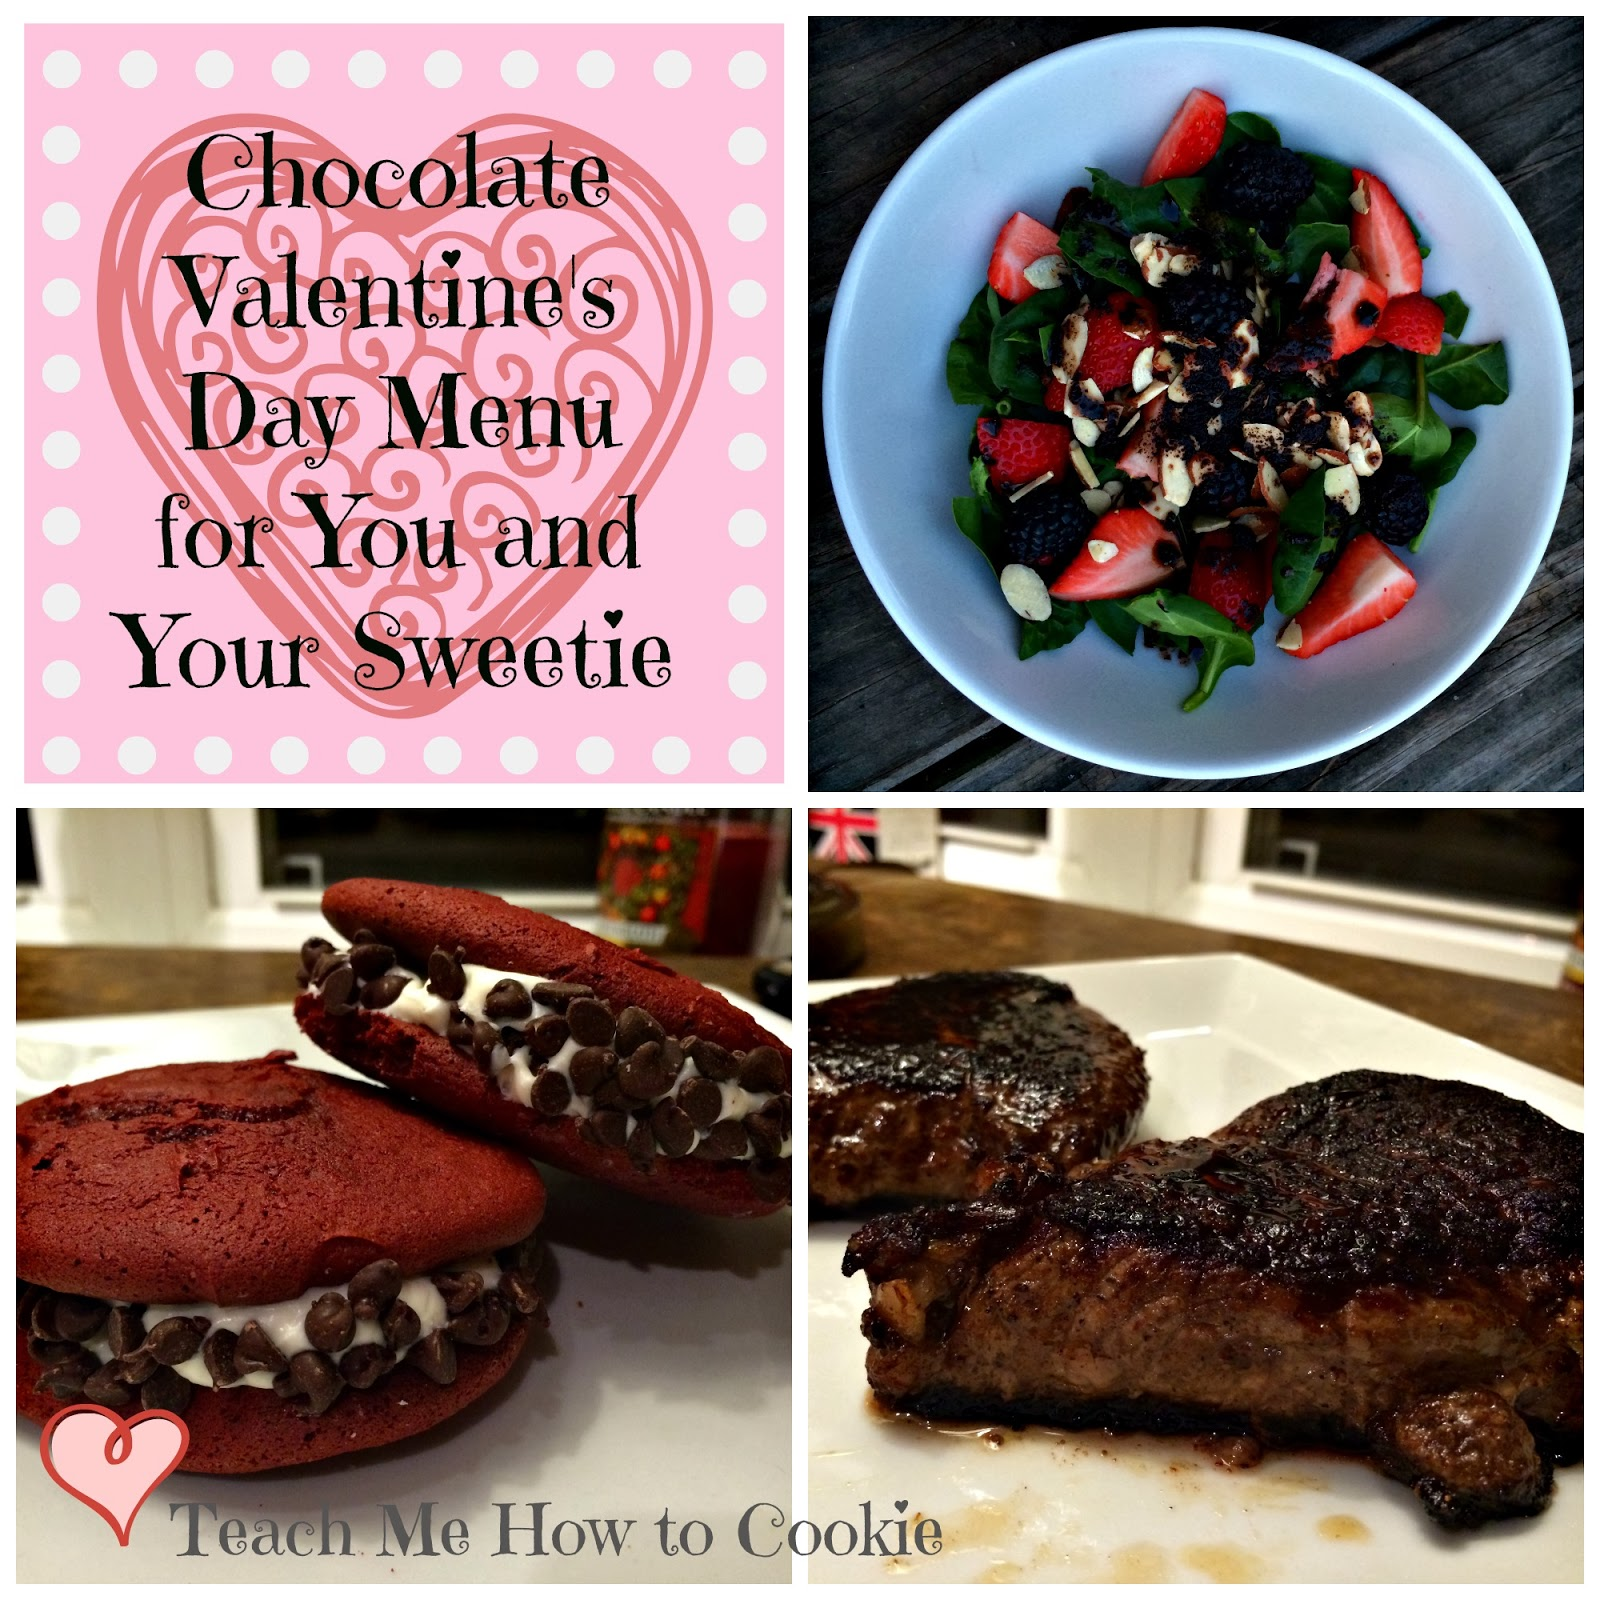 Valentine's Dinner Menu for You and Your Sweetie Chocolate